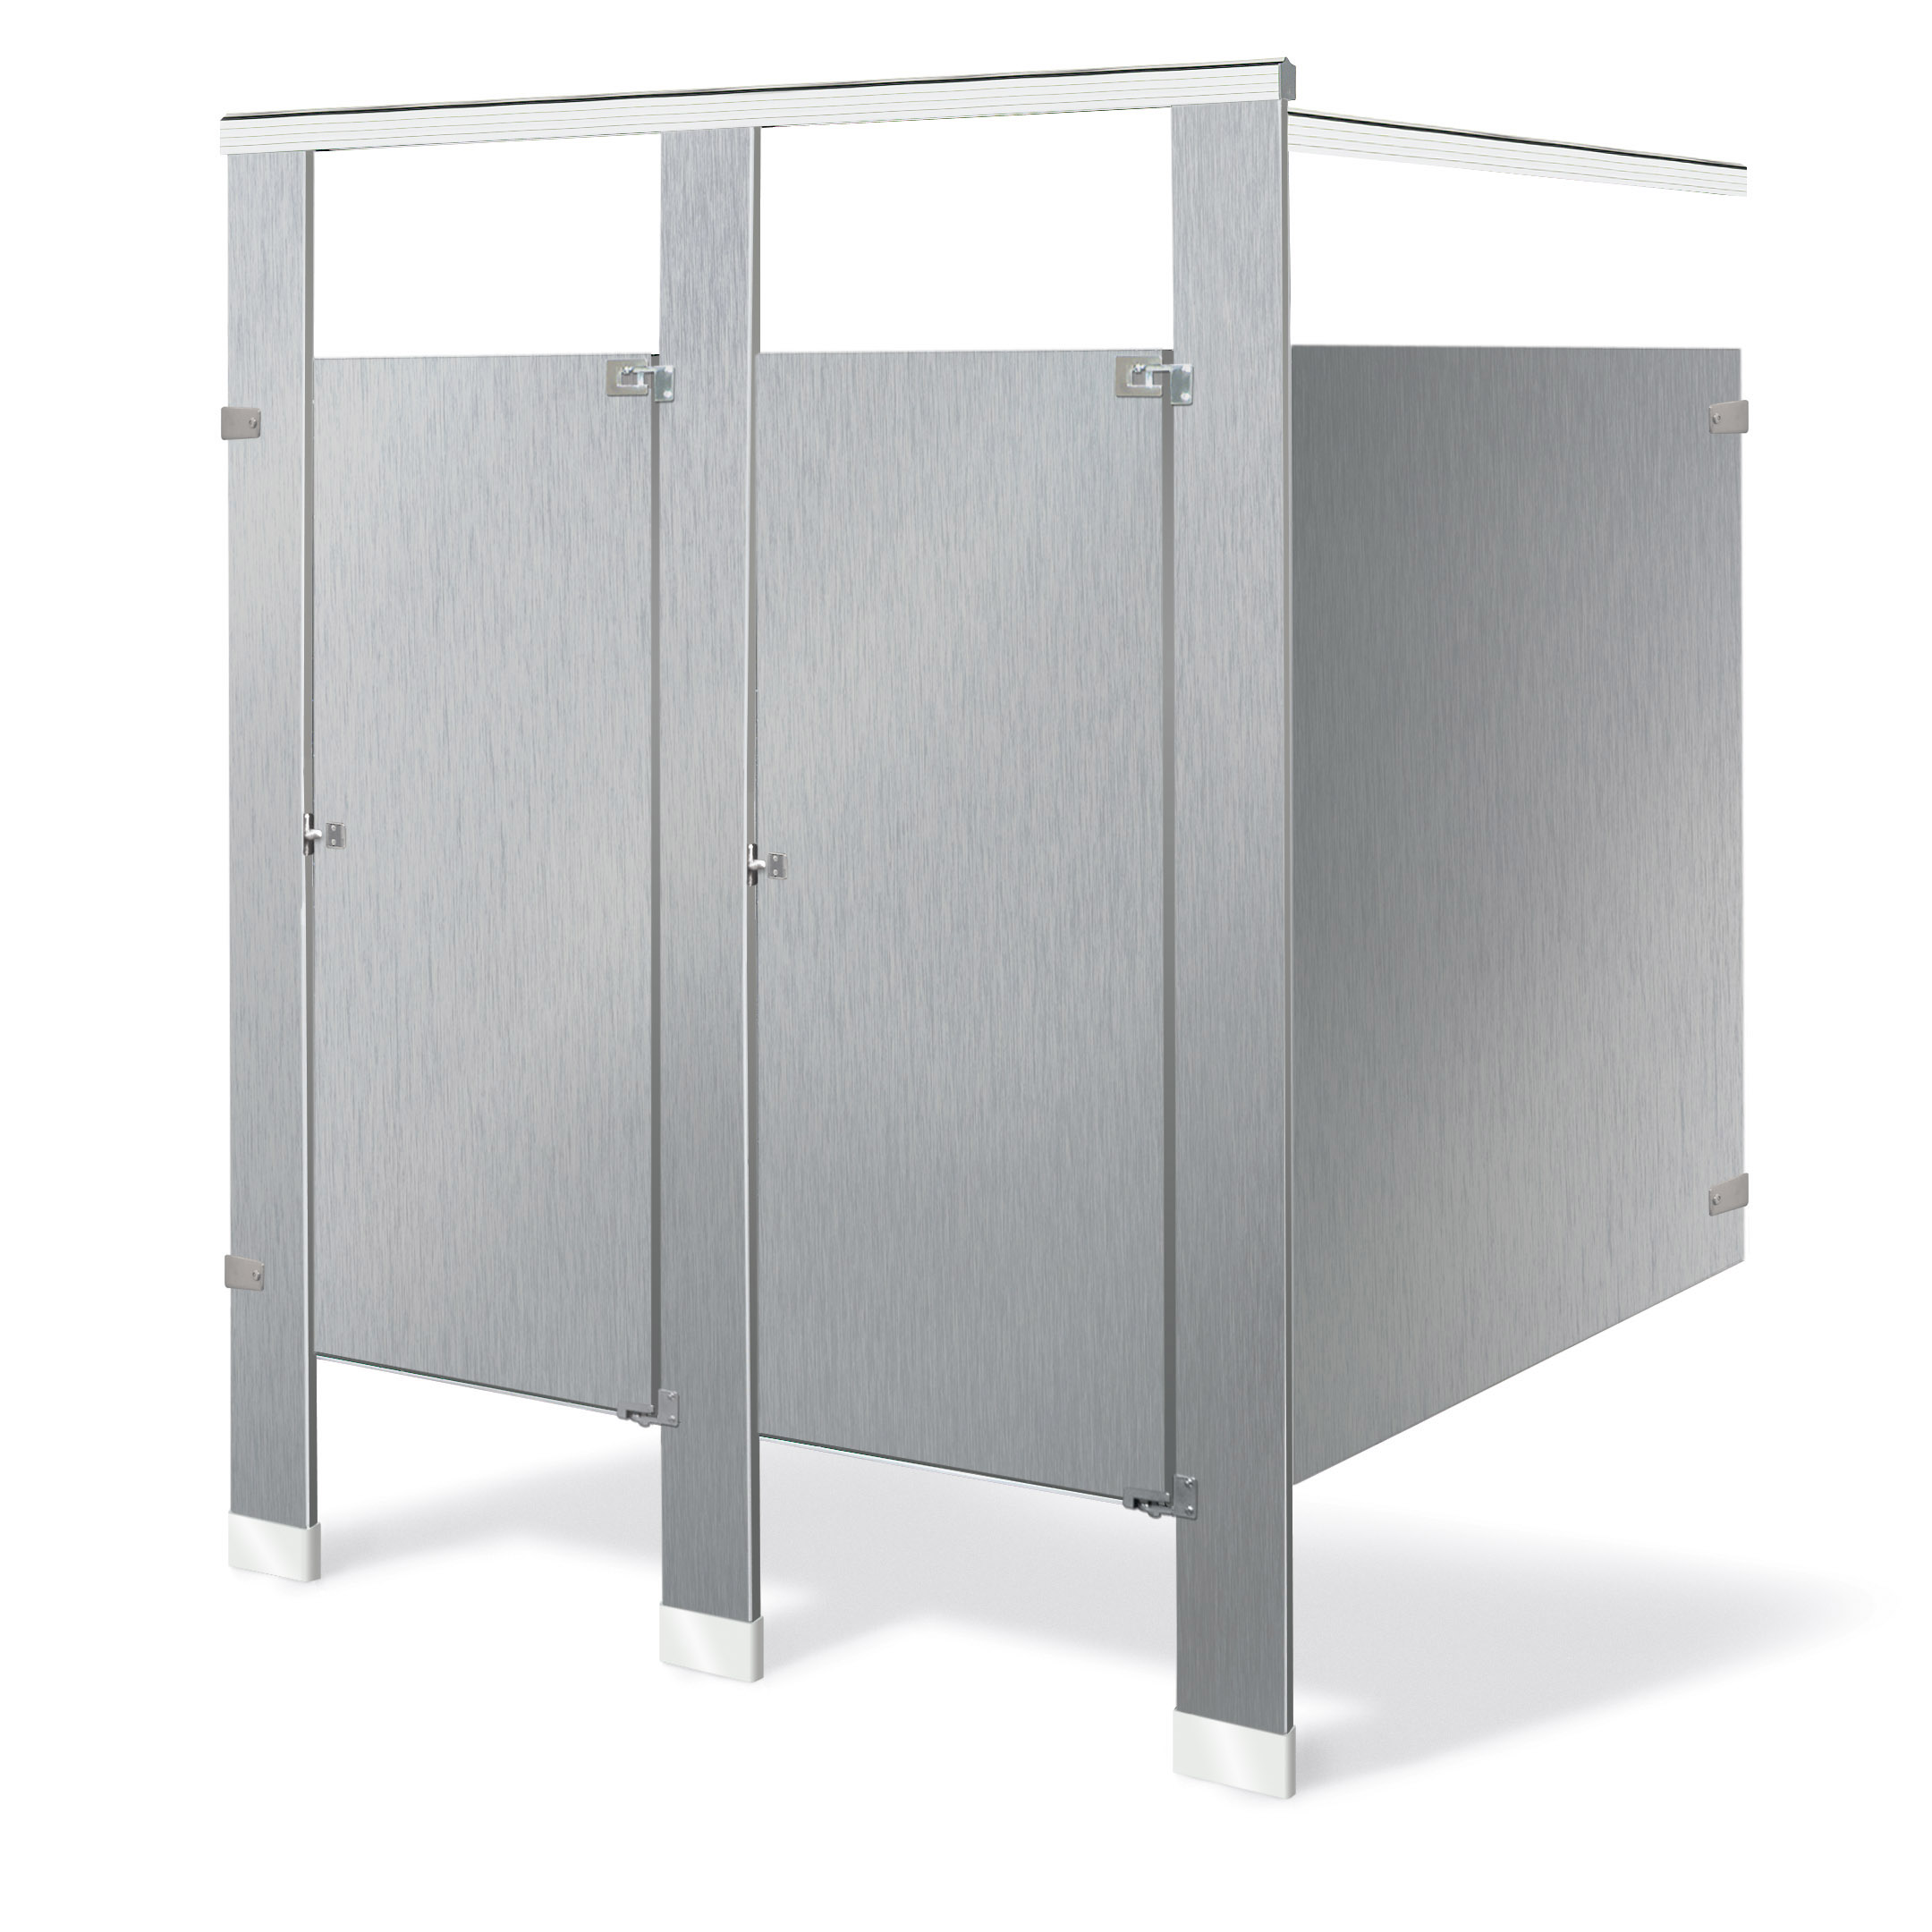 Bradley Mills Baked Enamel Toilet Partitions - Public bathroom partitions